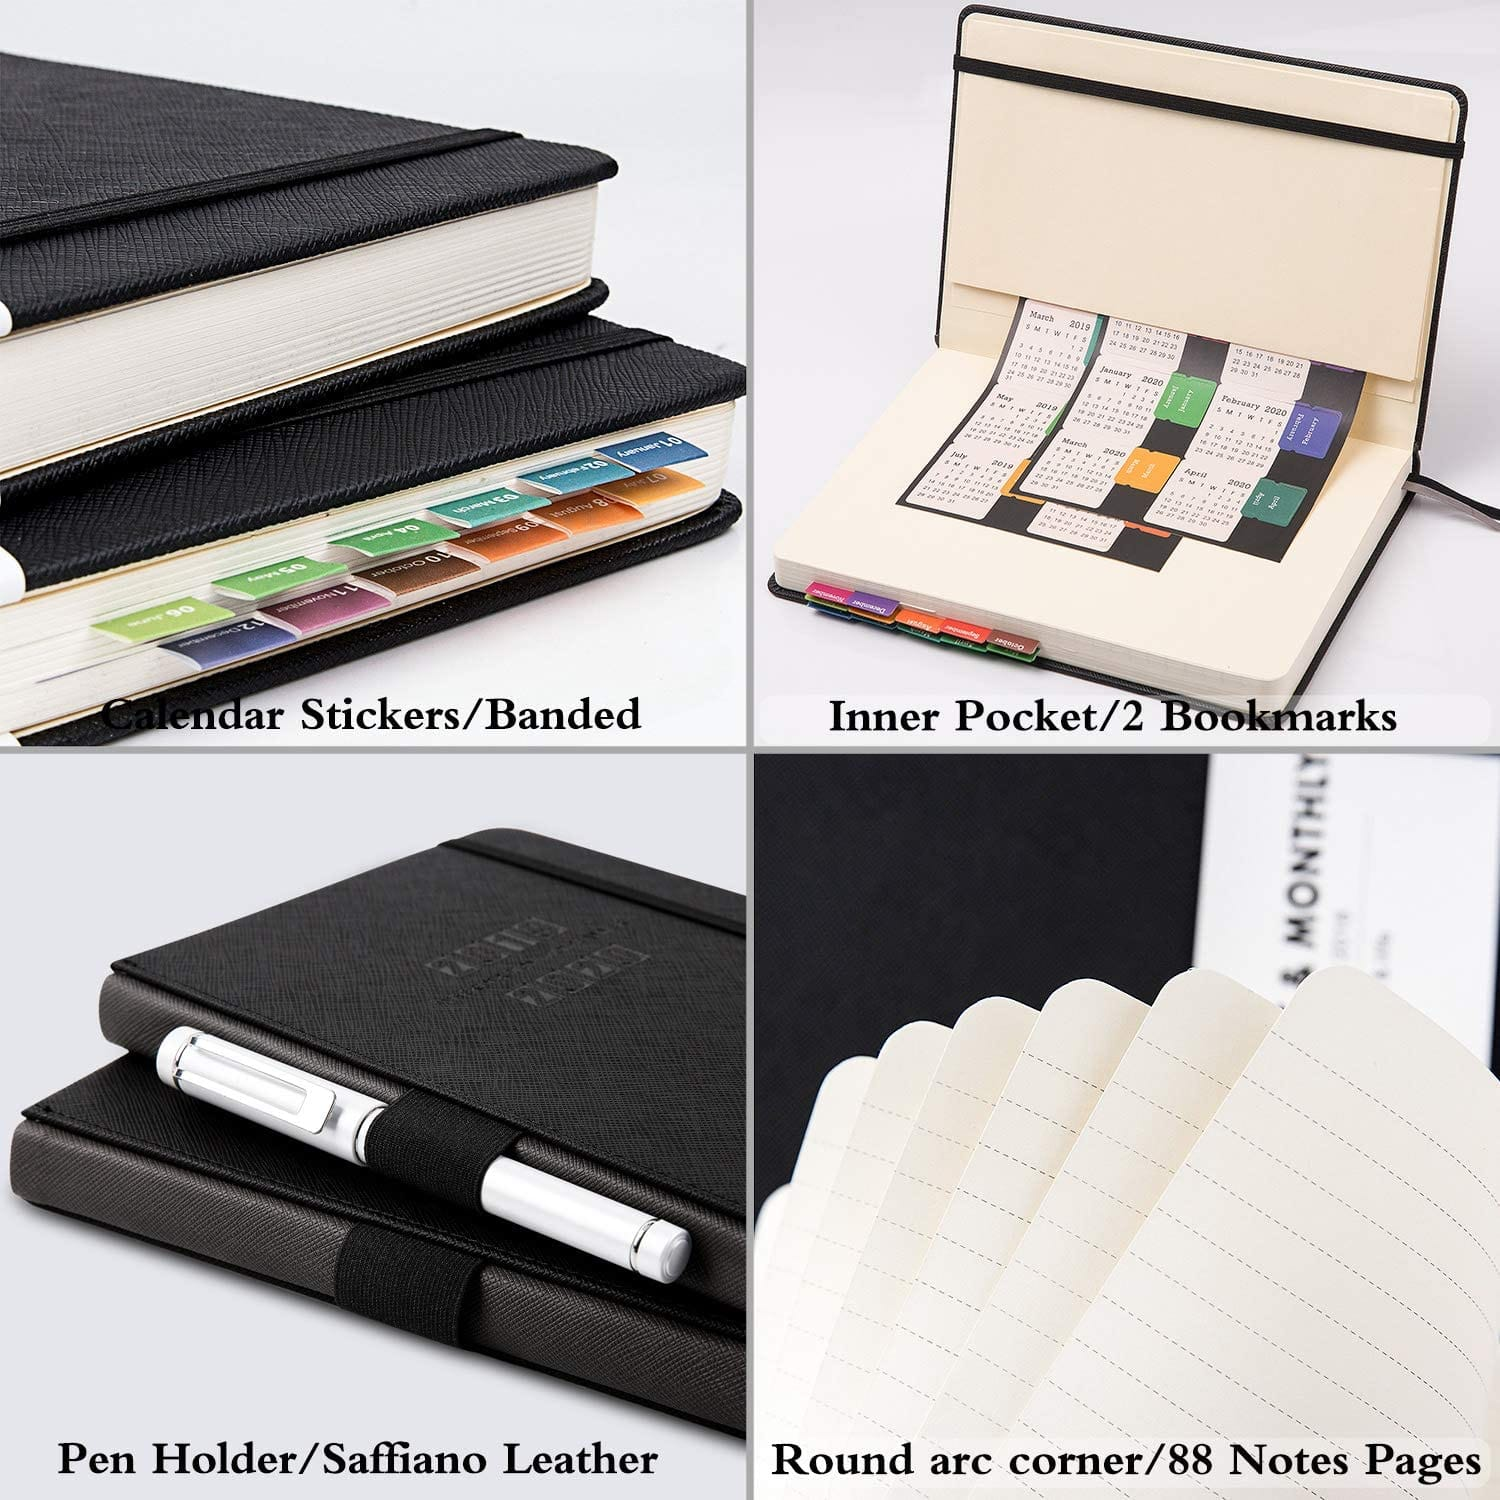 2020 Weekly/Monthly Planner Saffiano Leather (Black) $10 + Free shipping w/ Prime or $25+